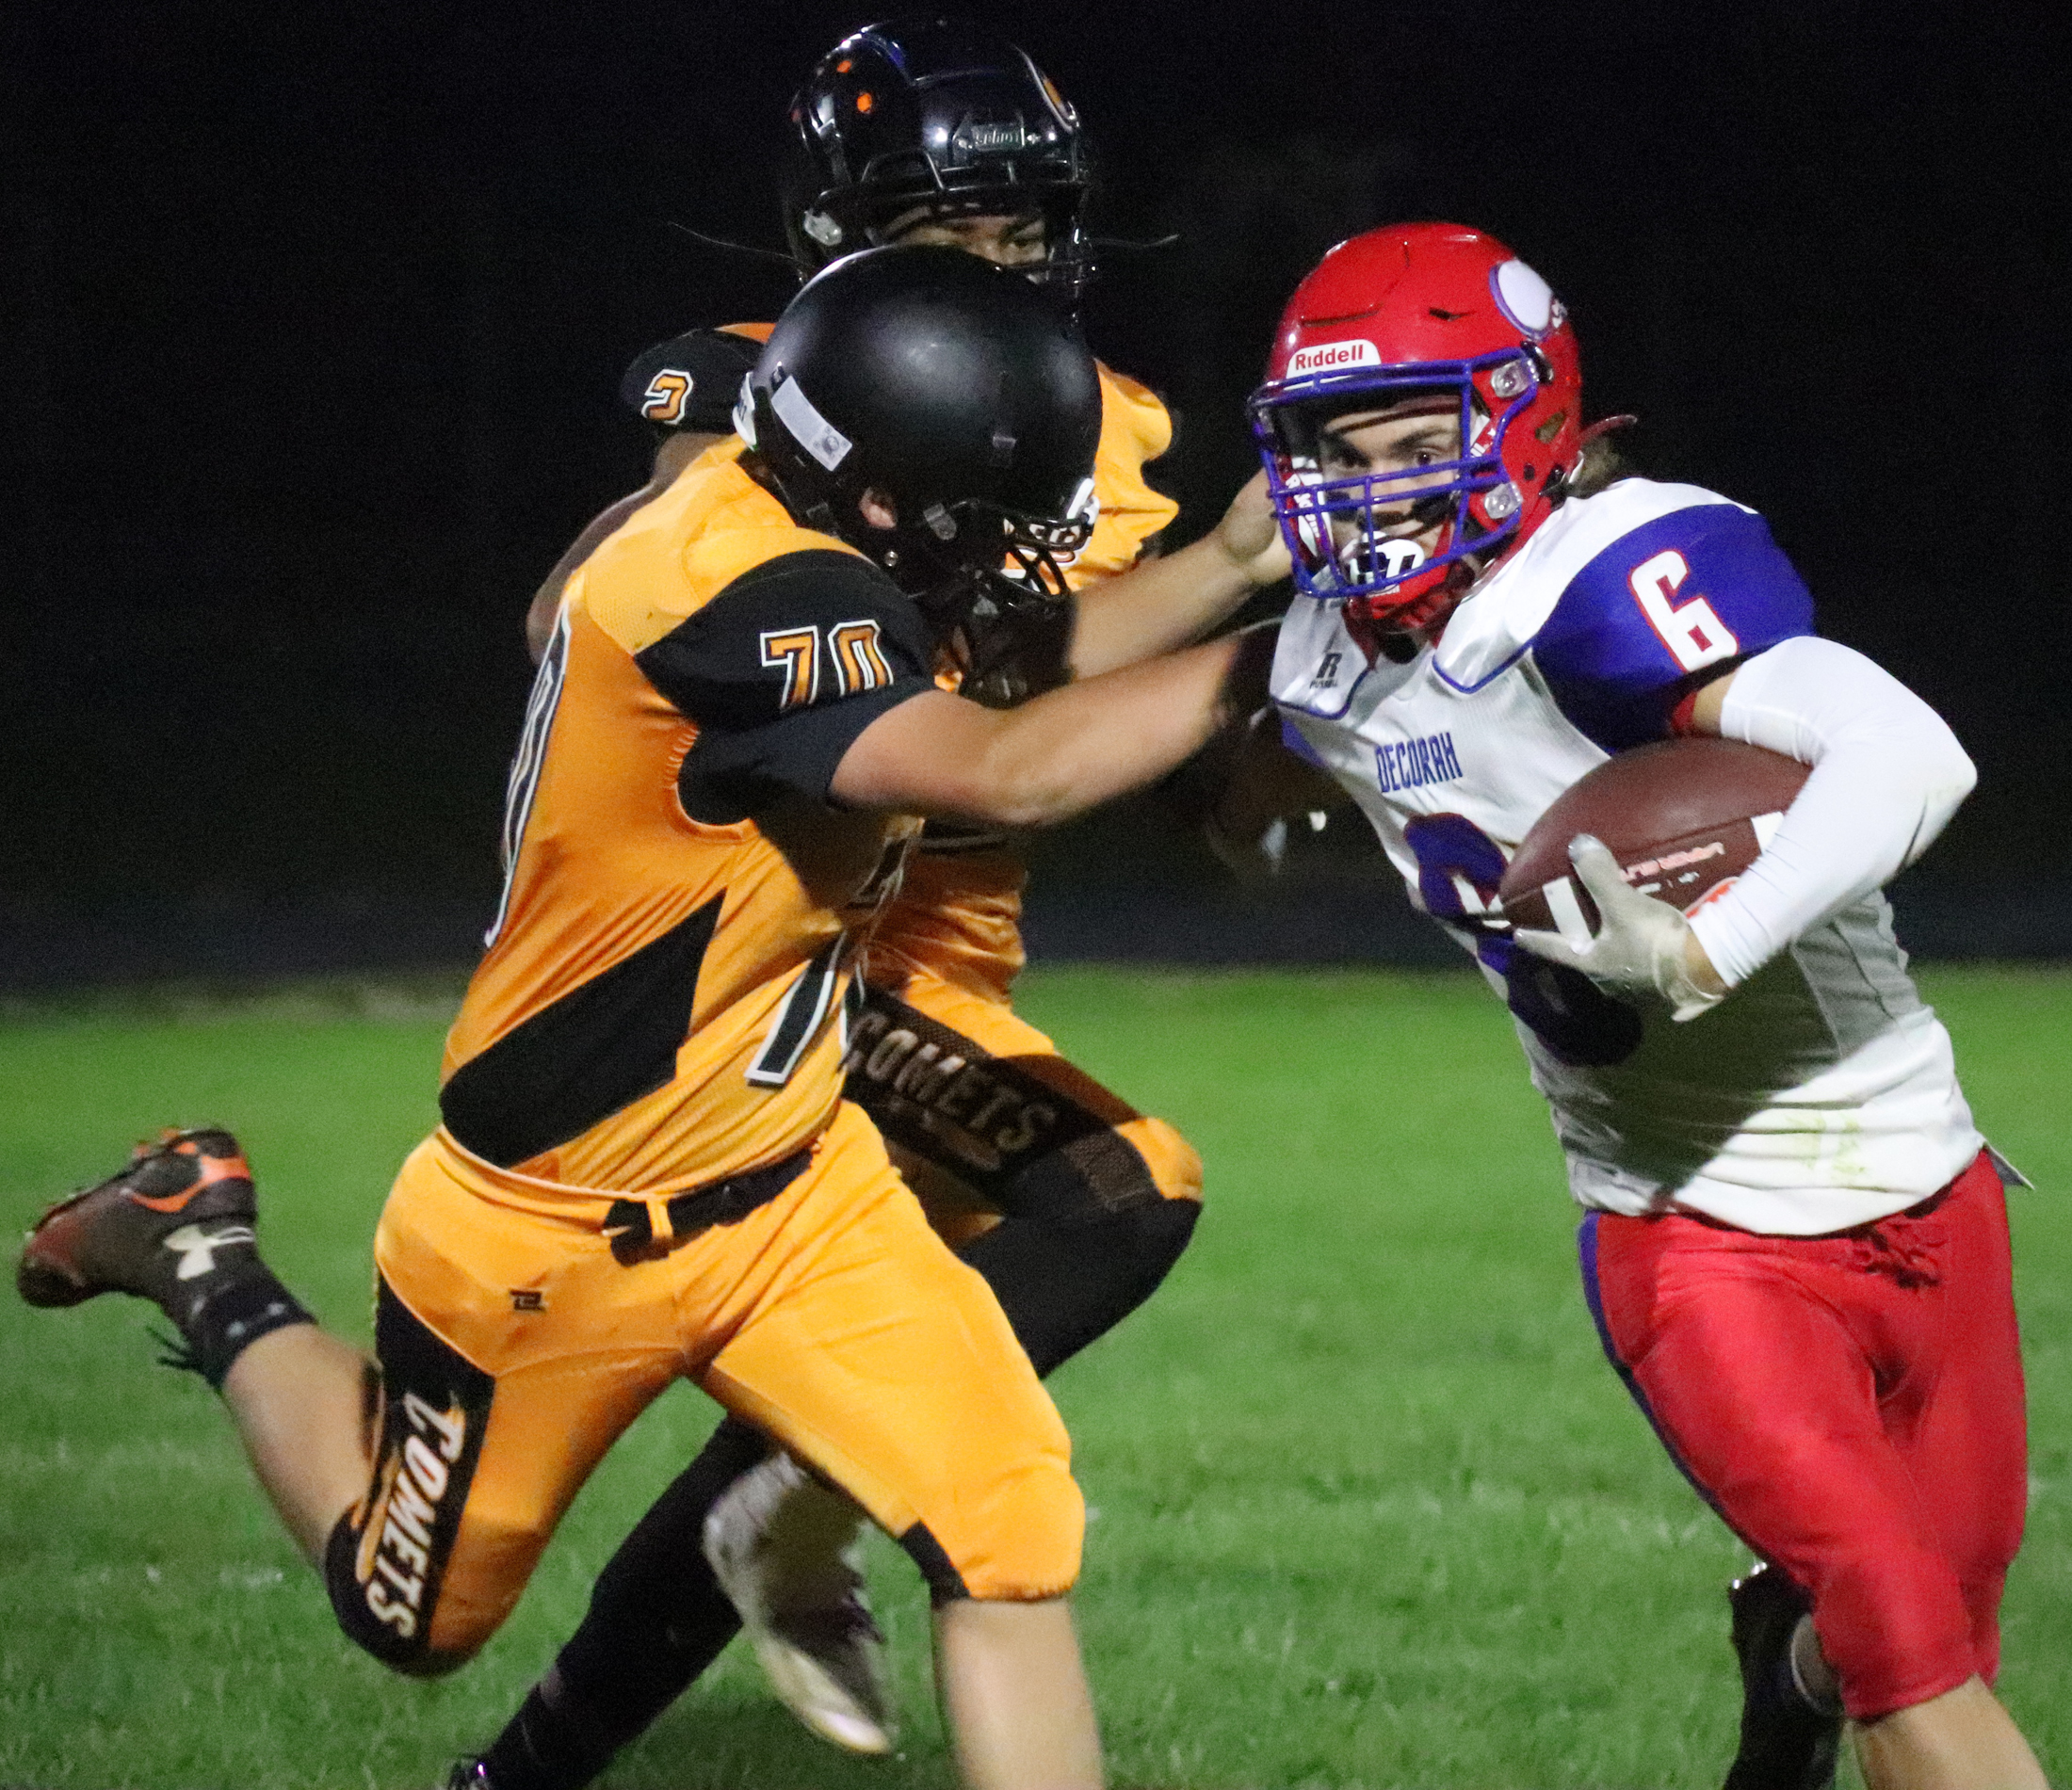 Vikings take control early in 35-6 win over Comets